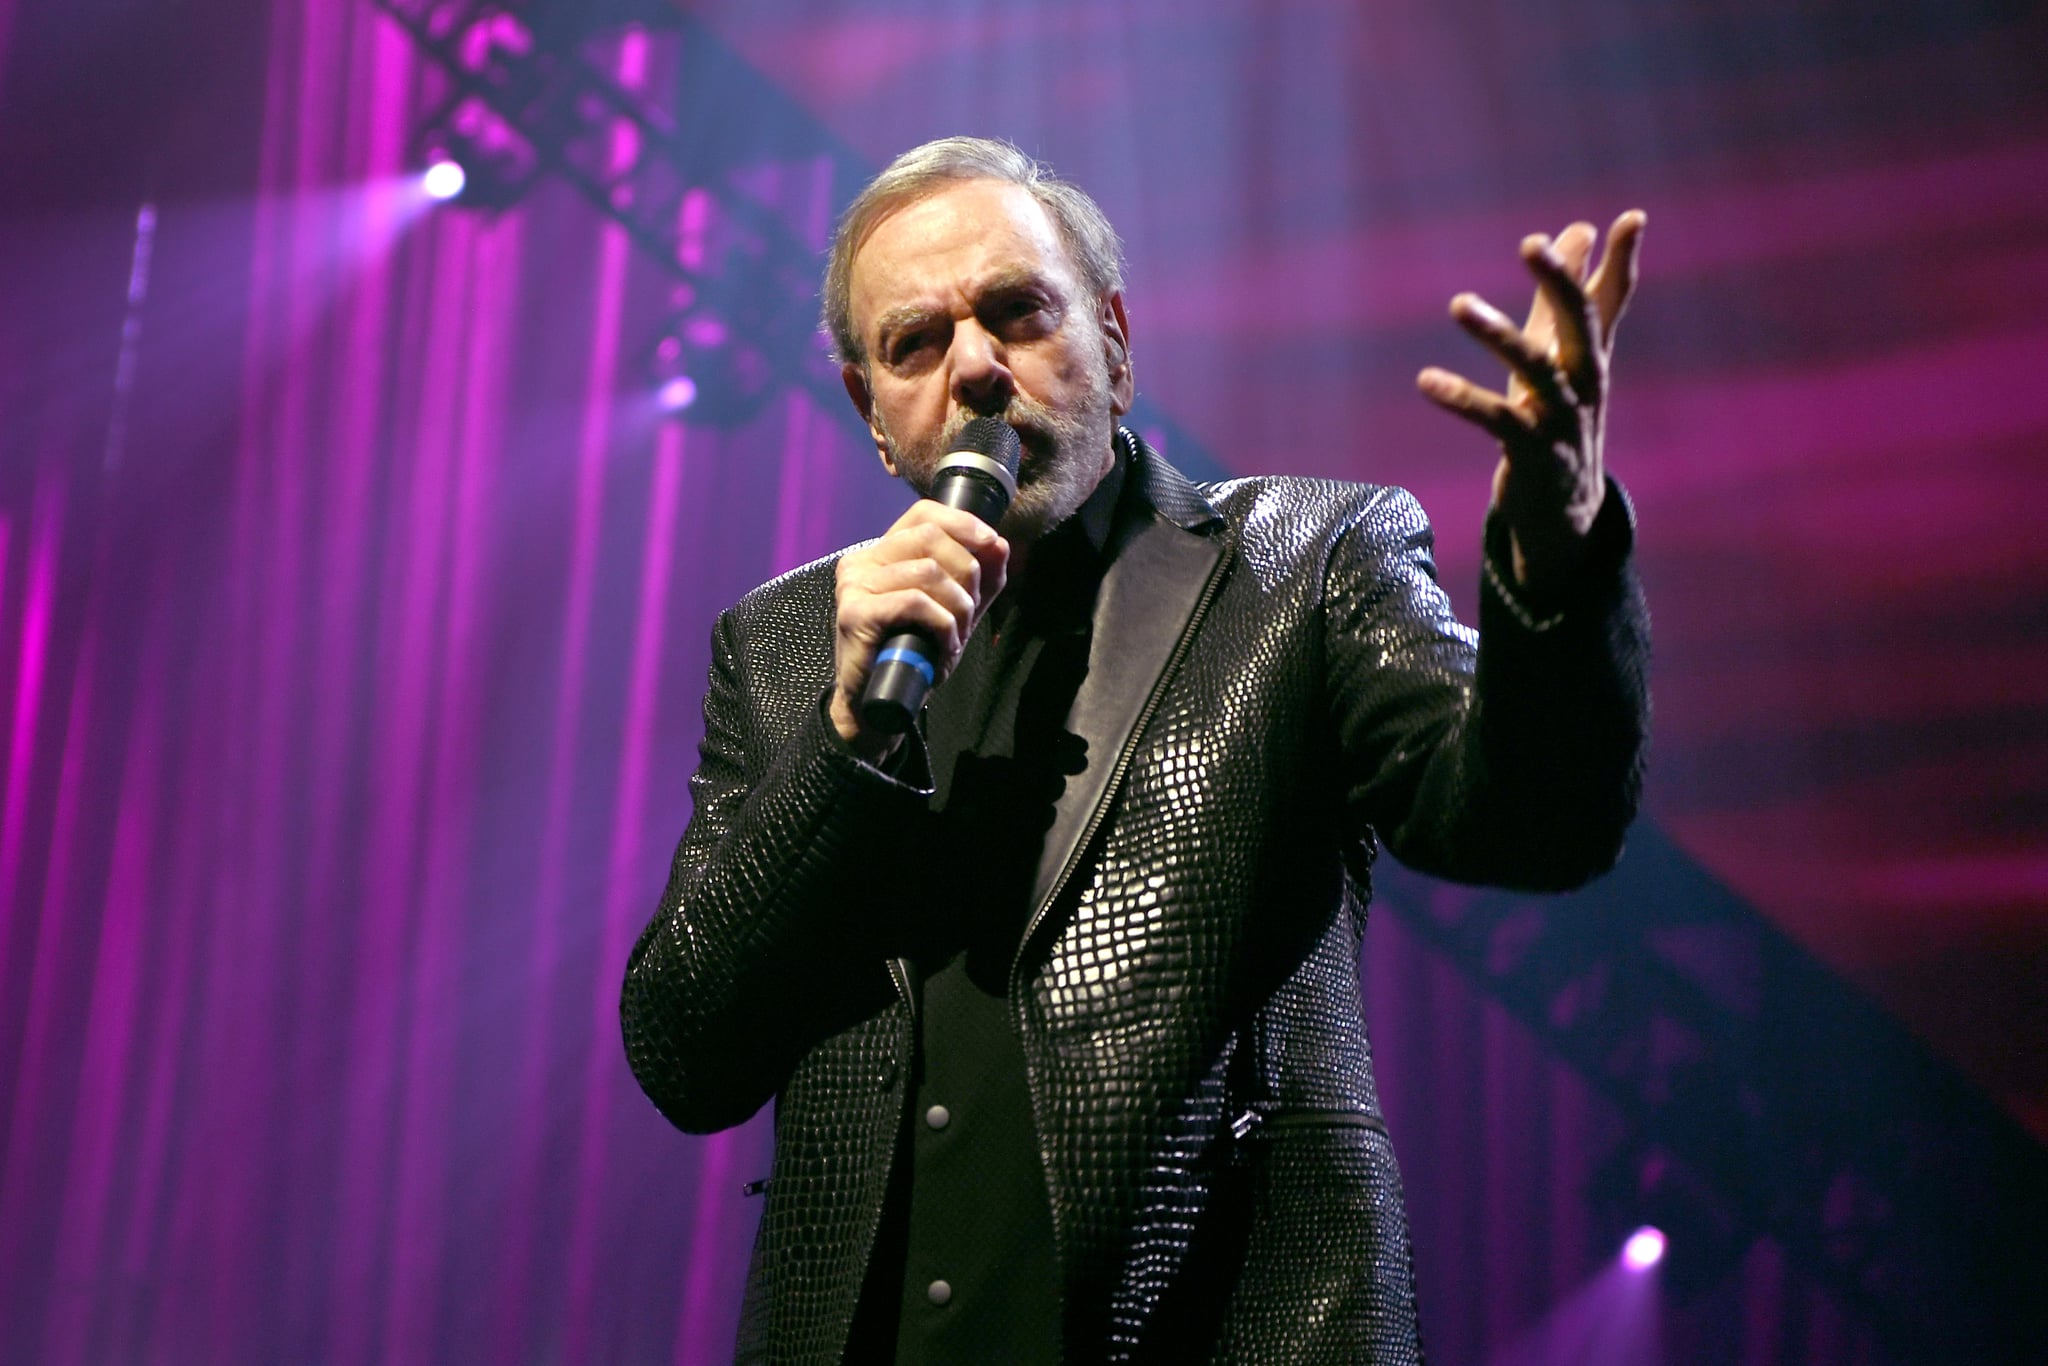 LAS VEGAS, NEVADA - MARCH 07: Neil Diamond performs onstage at the 24th annual Keep Memory Alive 'Power of Love Gala' benefit for the Cleveland Clinic Lou Ruvo Centre for Brain Health at MGM Grand Garden Arena on March 07, 2020 in Las Vegas, Nevada. (Photo by Denise Truscello/Getty Images for Keep Memory Alive)